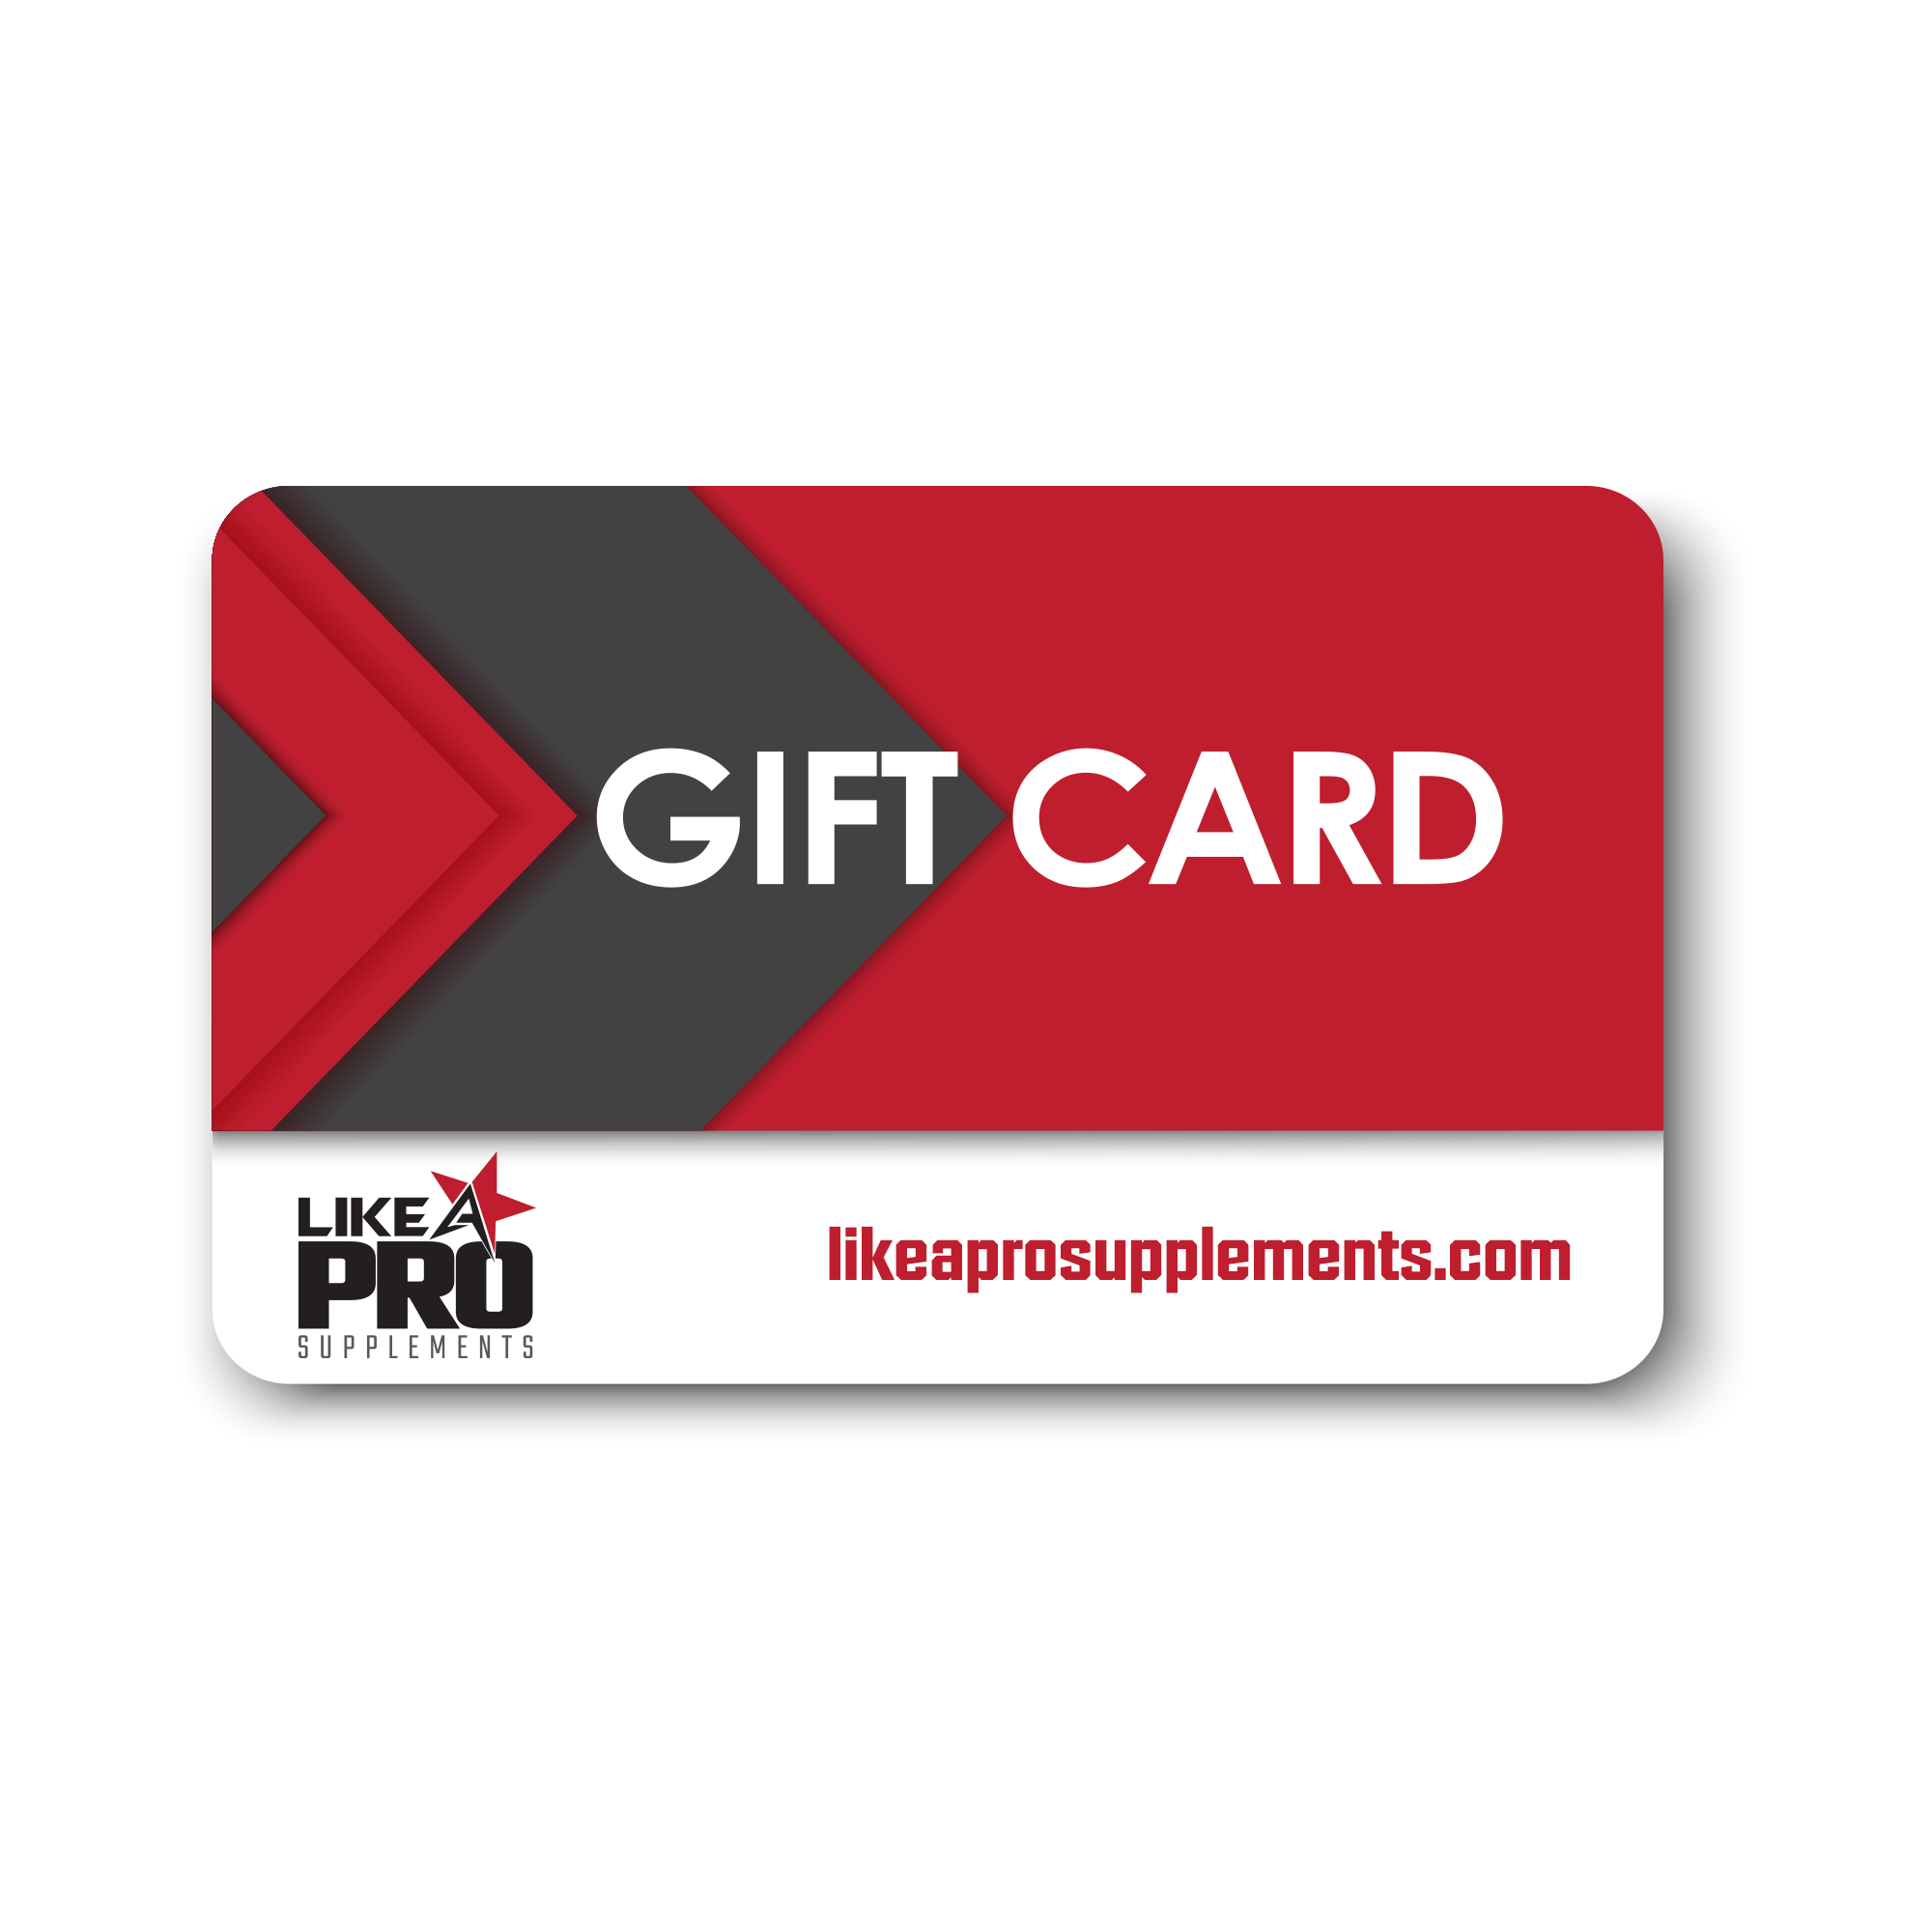 lap gift card  25  like a pro supplements